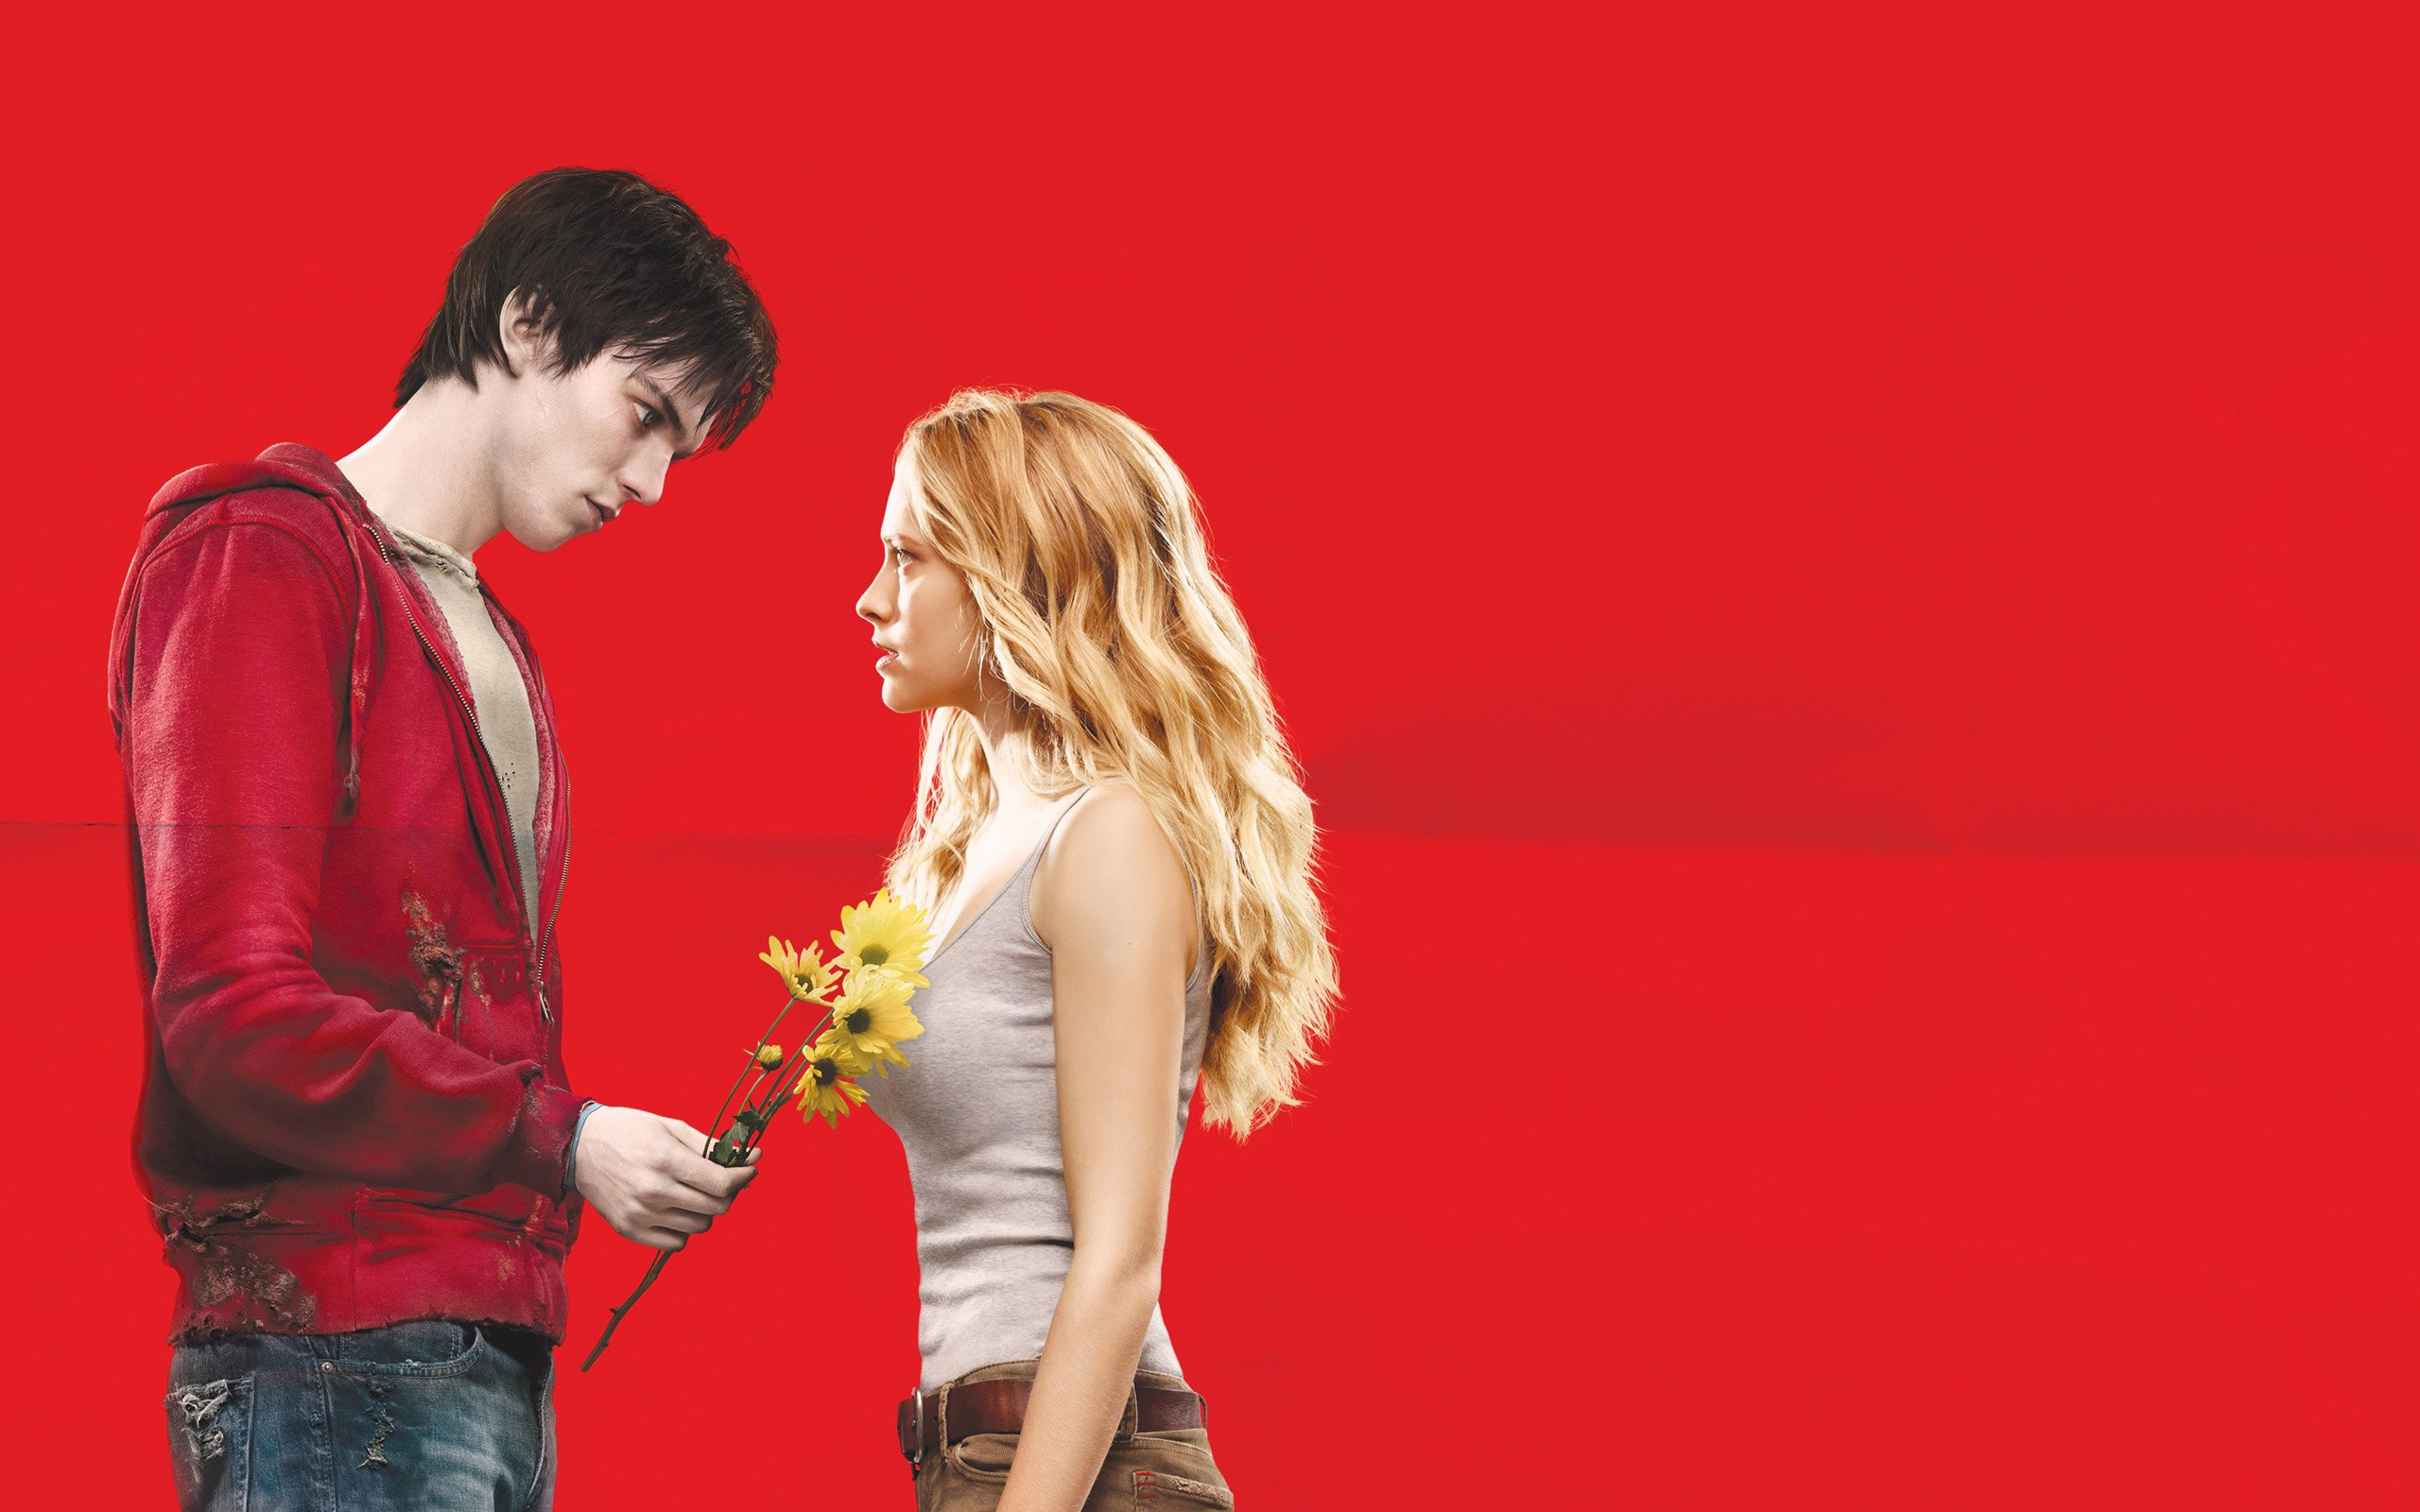 Nicholas Hoult in Warm Bodies wallpaper 2560x1600